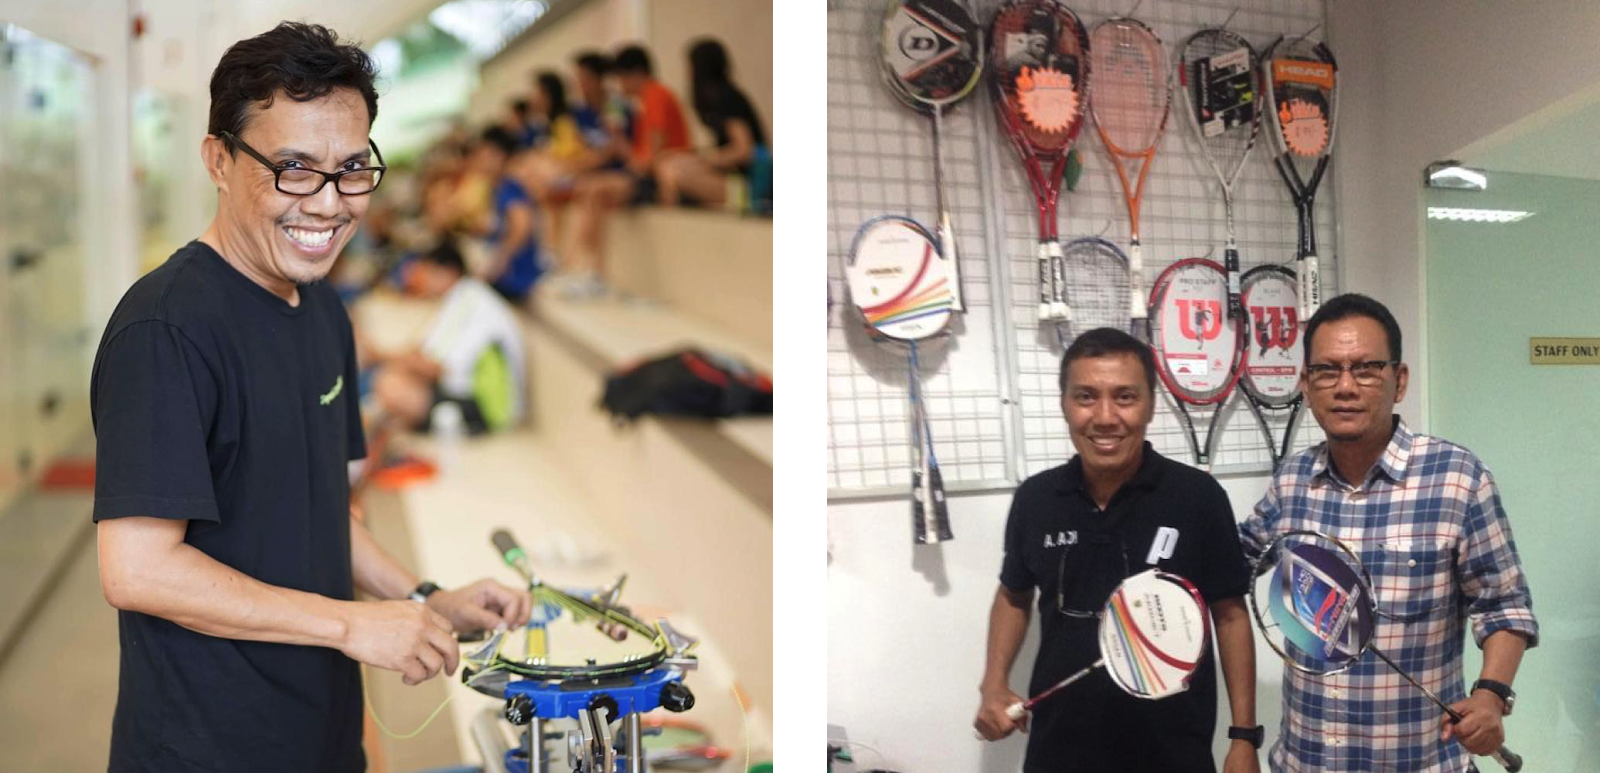 Left: Adi restringing a squash racket at the NUScompetitionRight:Friends & fans visiting the store